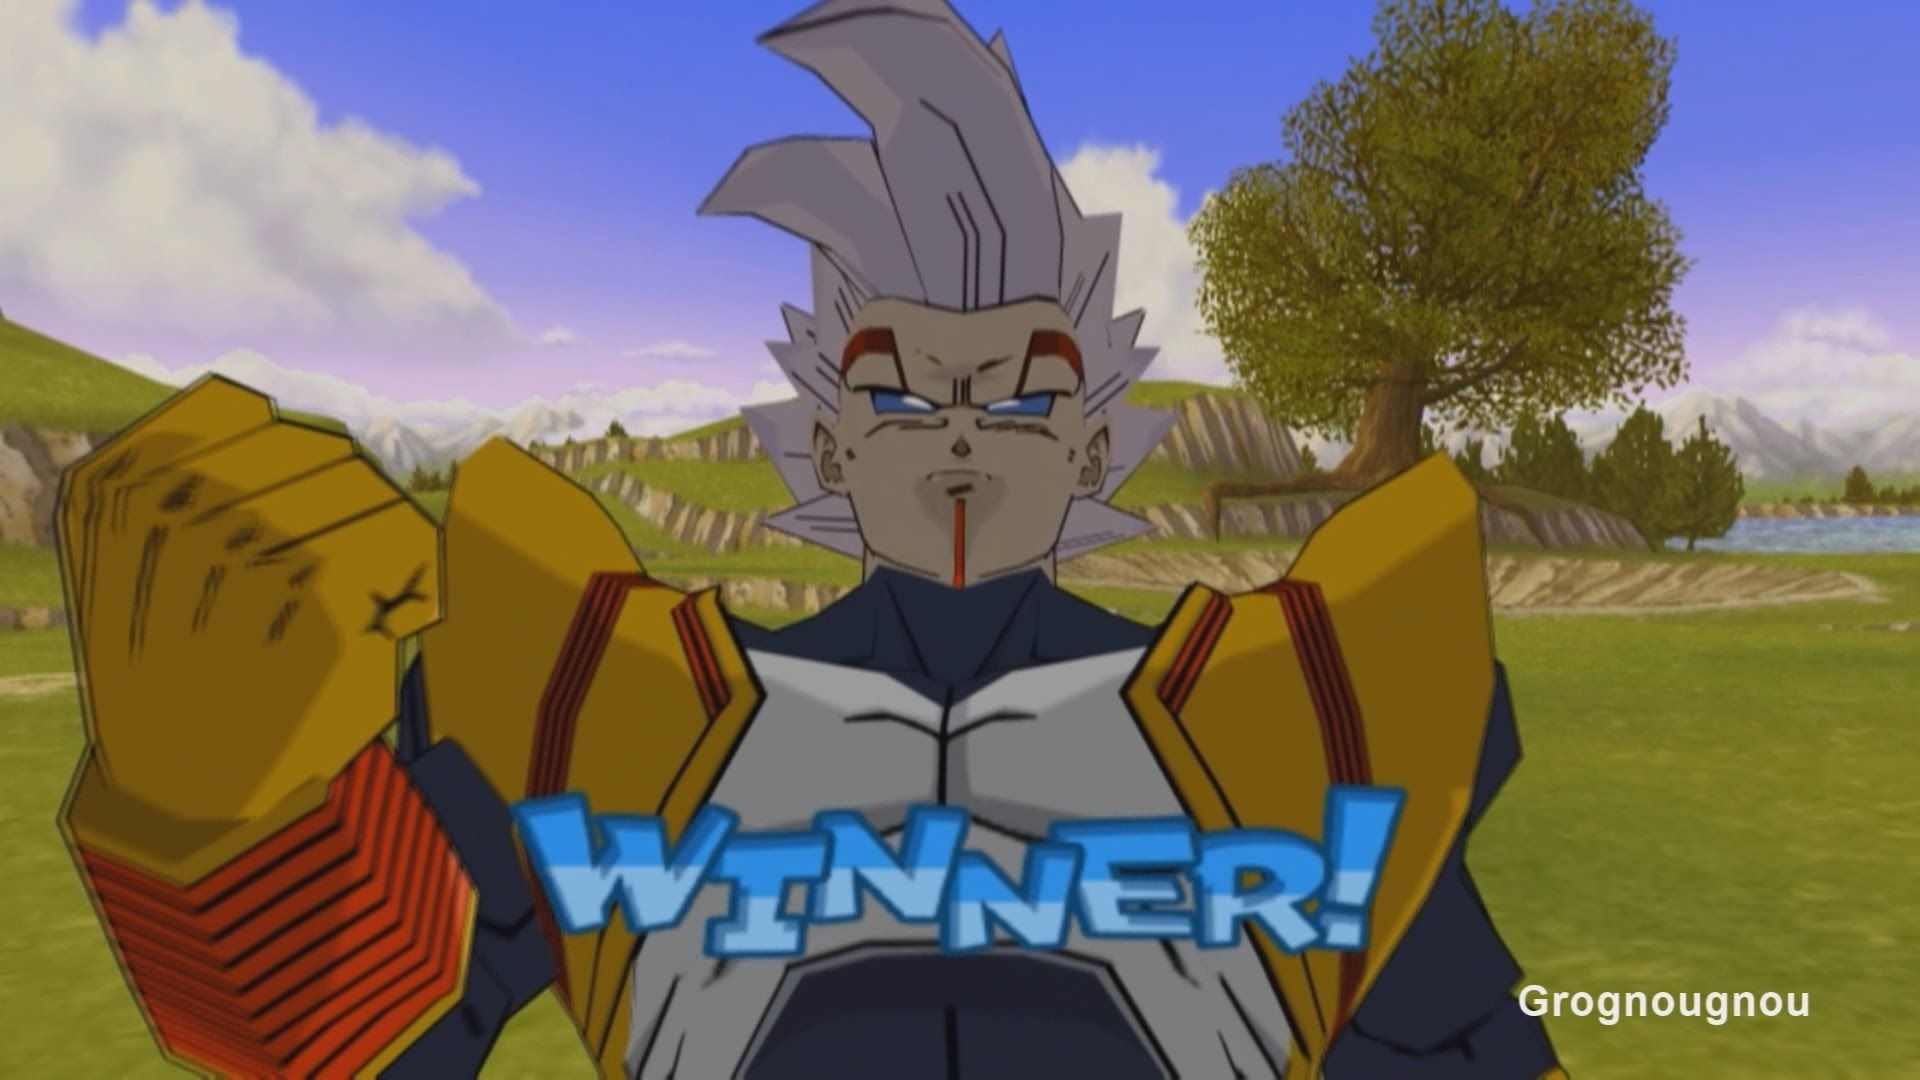 Vegeta Gt Get Possessed By Baby And Turns Into Super Baby 2 In The Game Dragon Ball Z Budokai 3 Mod Dragon Ball Z Future Trunks Dragon Ball